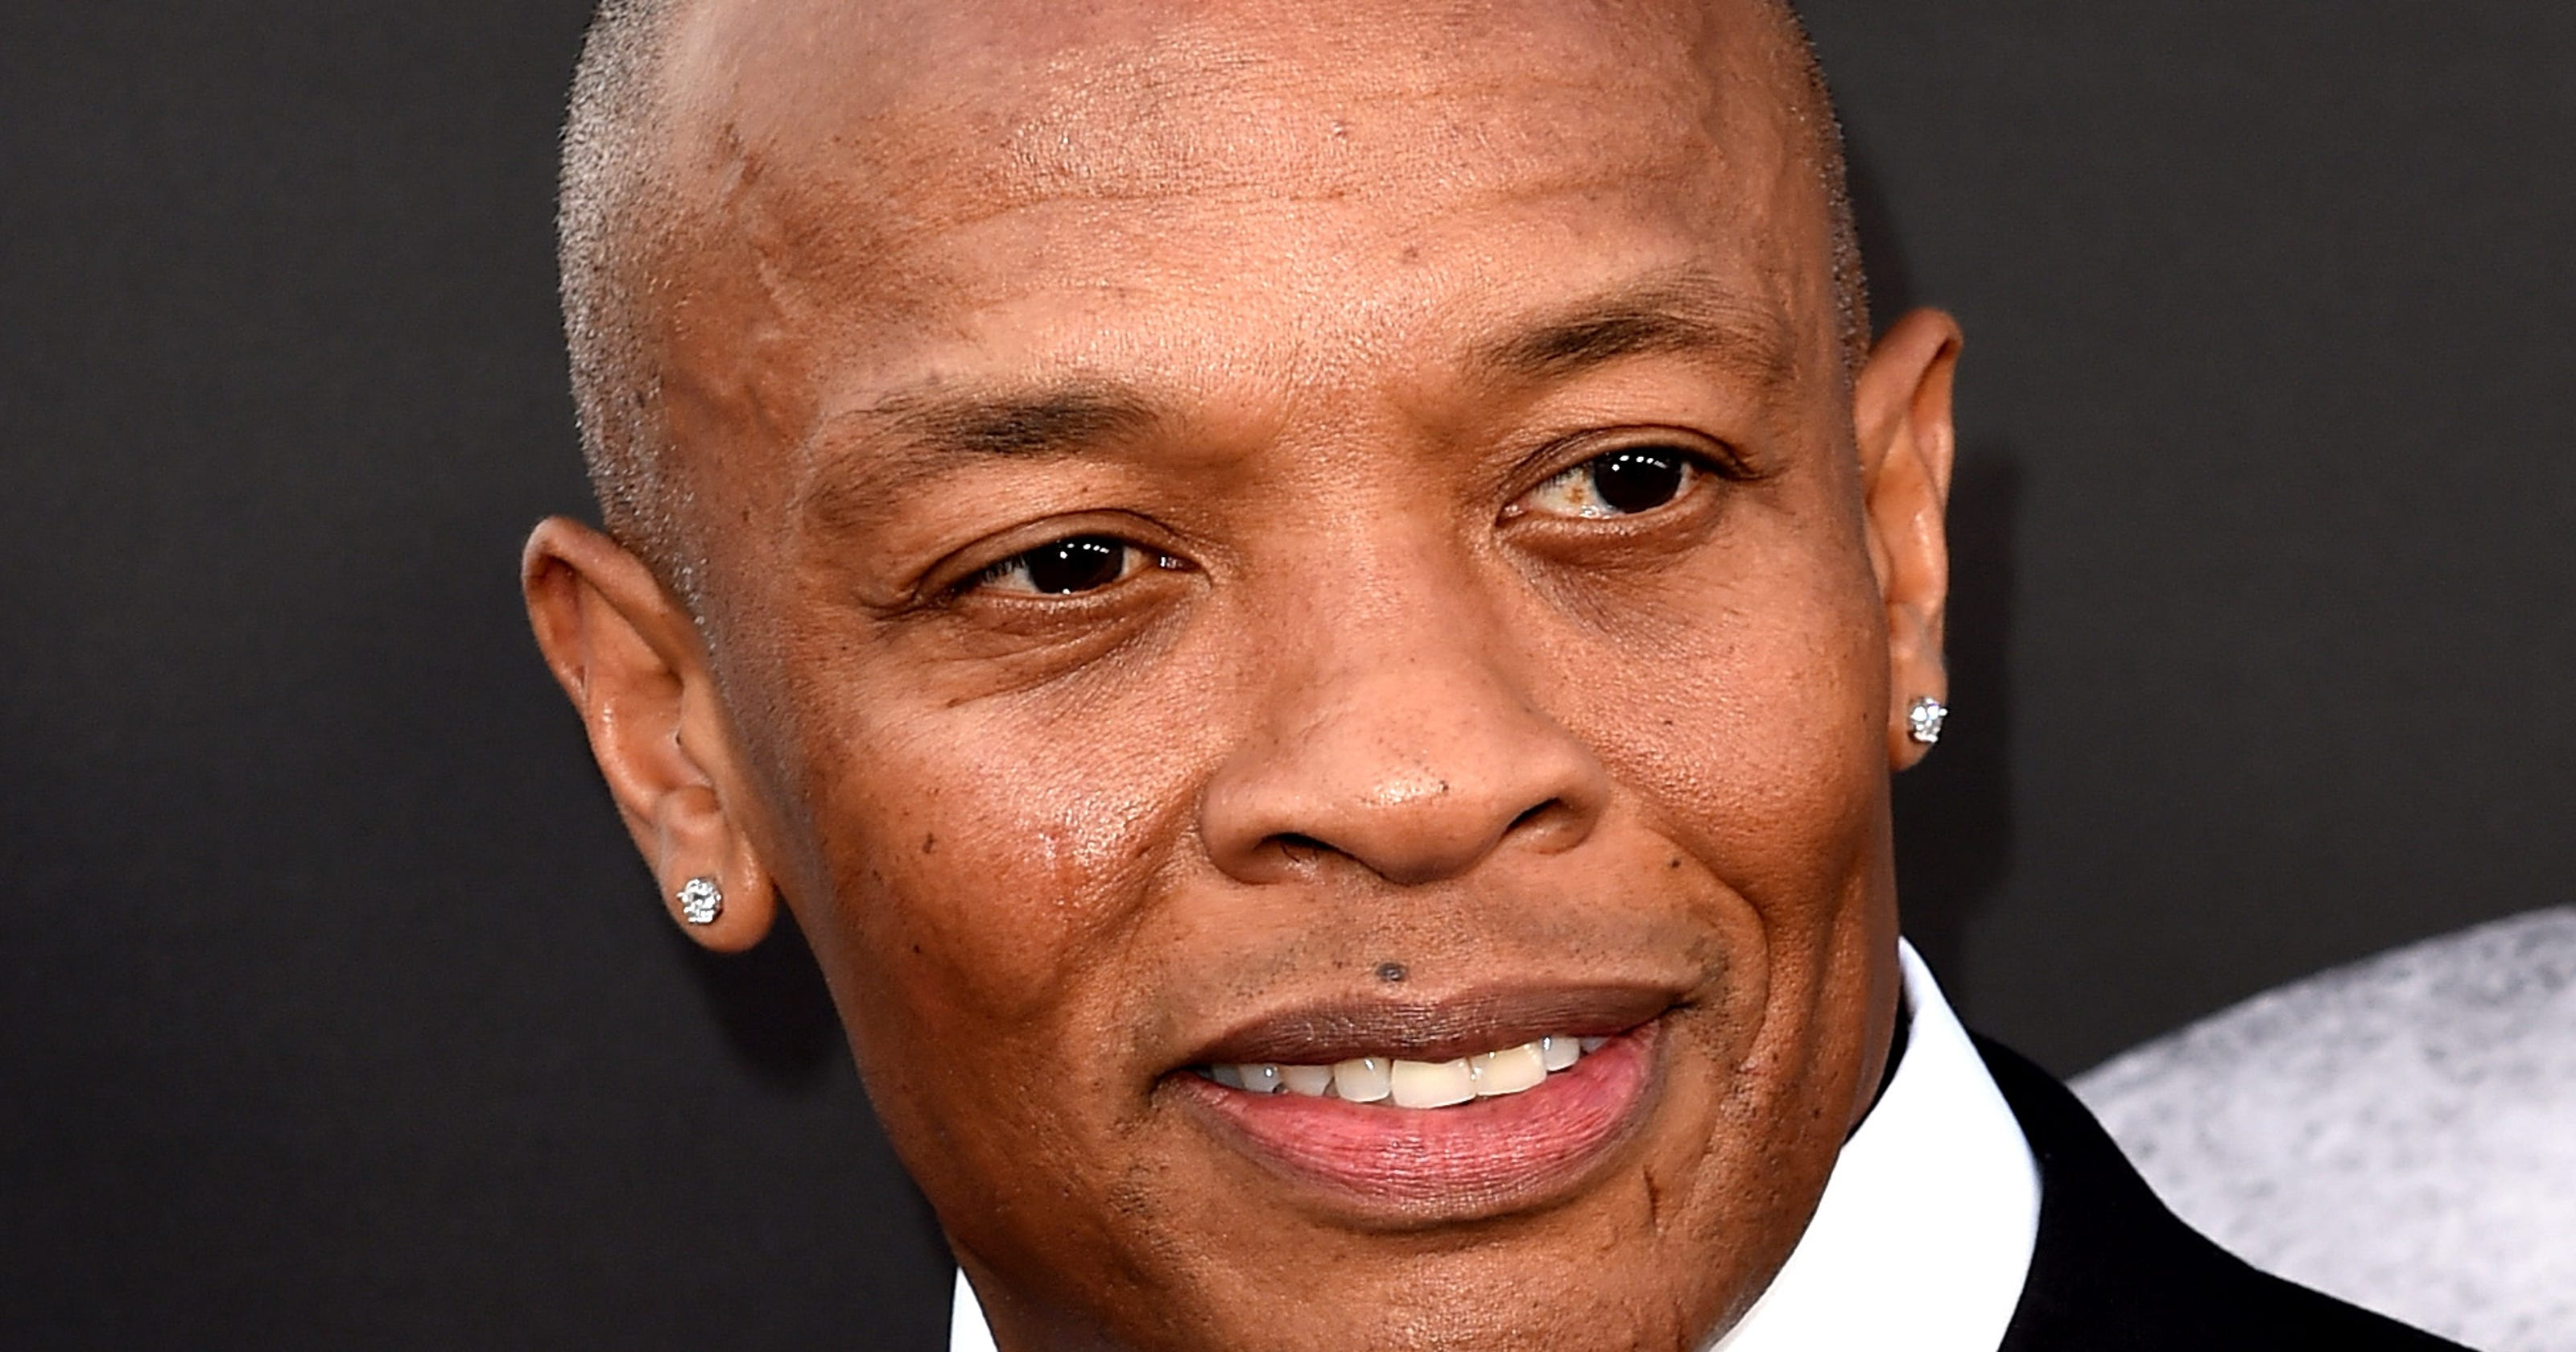 'No jail time!': Dr. Dre boasts daughter got into USC 'on her own,' then deletes post